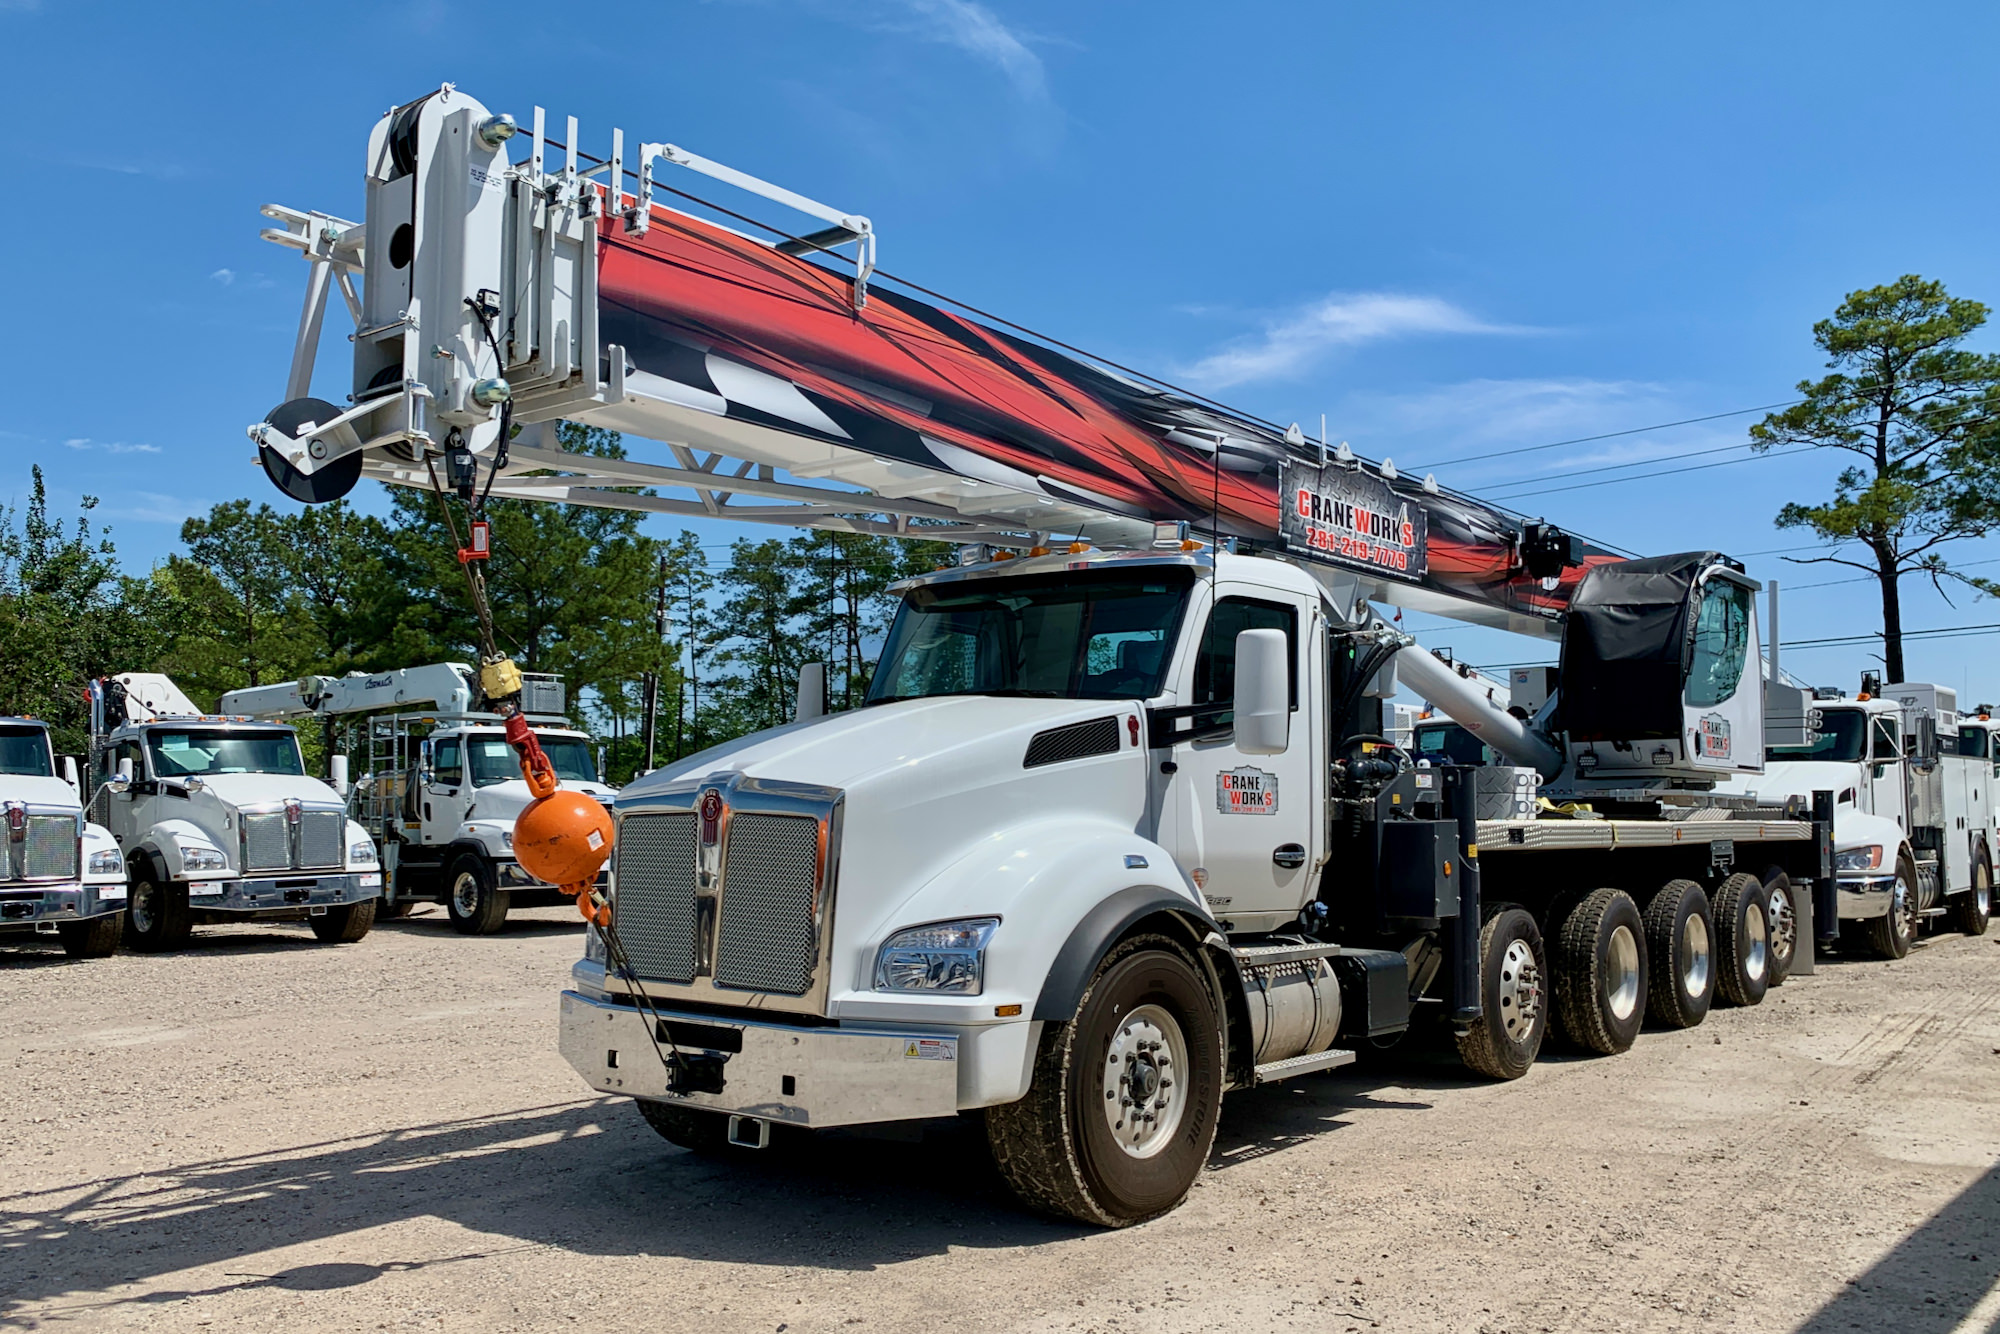 CraneWorks Now Has the 8th-Largest Crane Fleet in North America